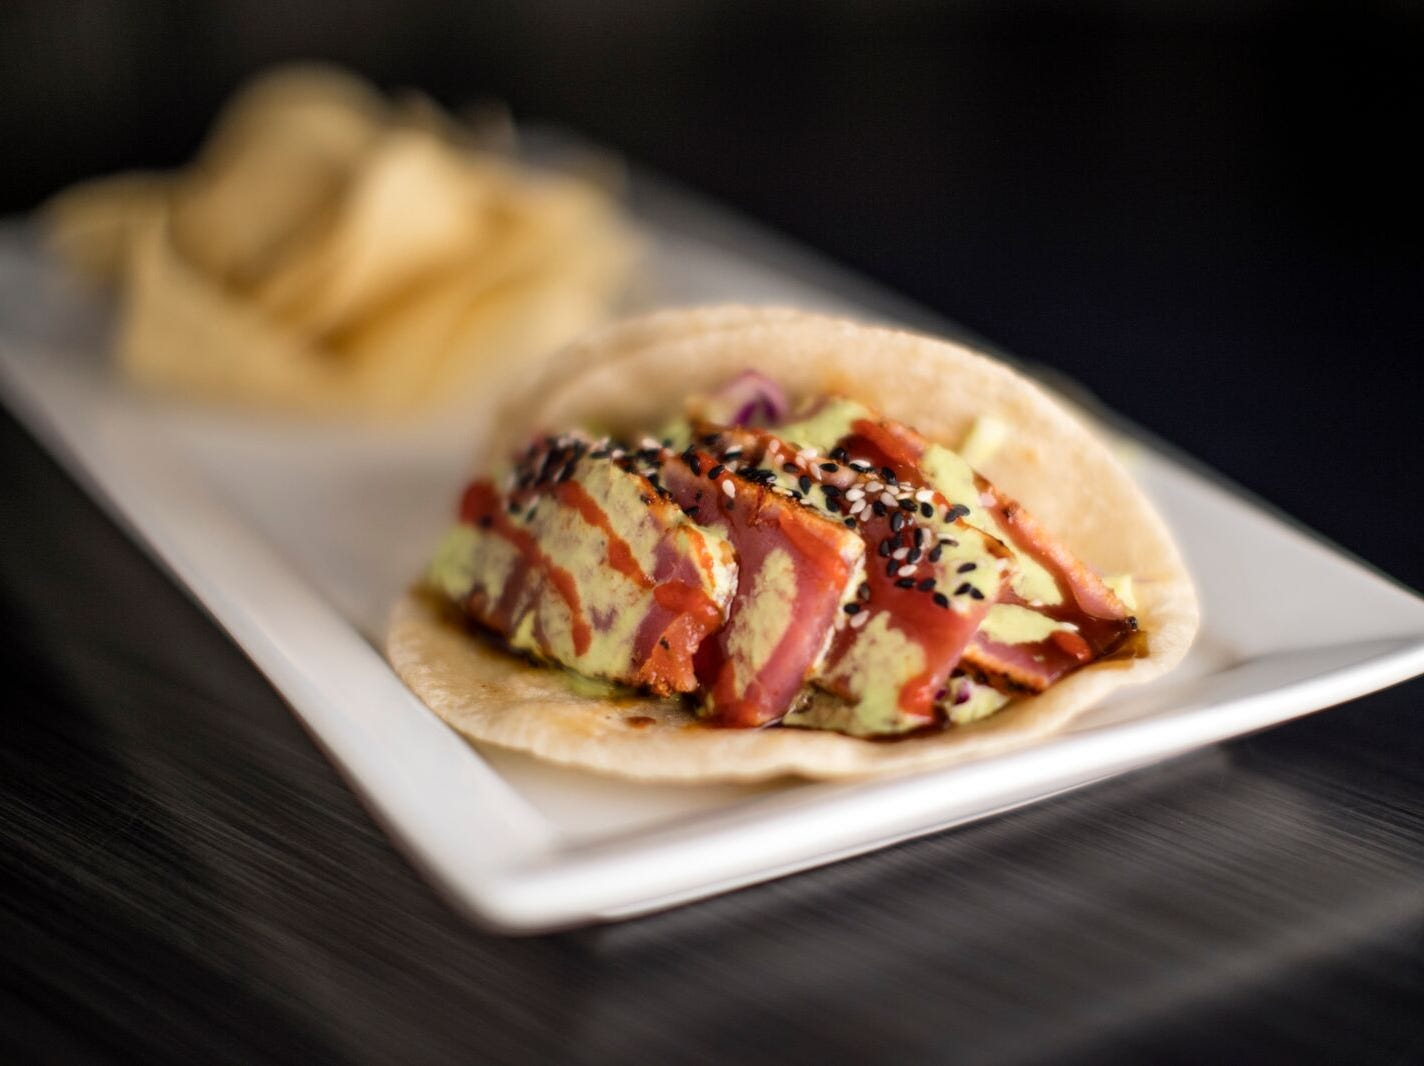 Social Tap | Celebrate with specials like $4 Dos Equis and $5 margaritas in cucumber lime, strawberry mint, pineapple chili, blackberry jalapeno and classic flavors. Snack on $2 street tacos from the mobile taco cart. Details: 4312 N. Brown Ave., Scottsdale. 602-432-6719, socialtapscottsdale.com.